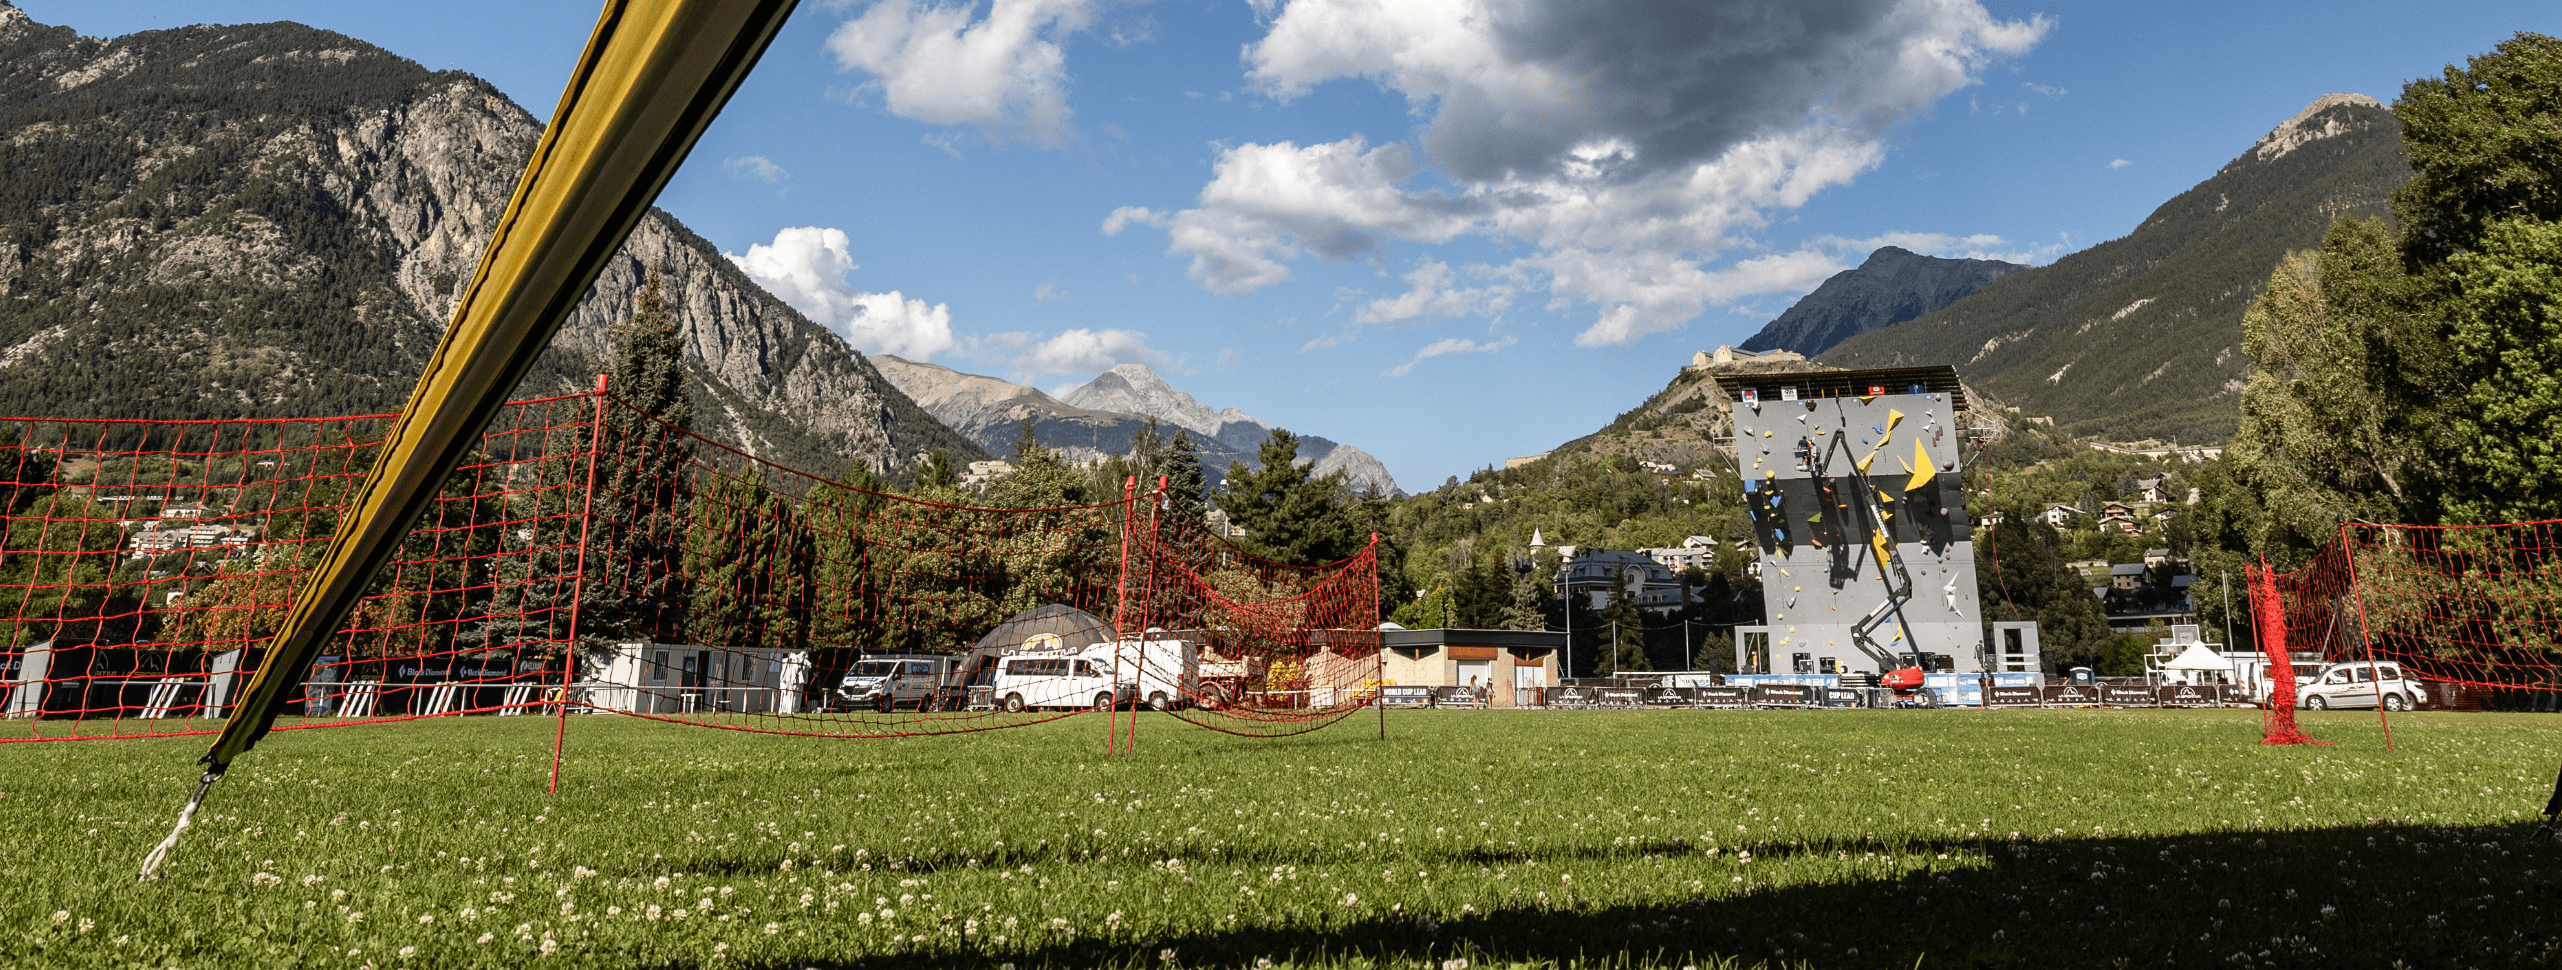 BRIANÇON IS READY TO HOST THE FIRST IFSC WORLD CUP OF THE SEASON